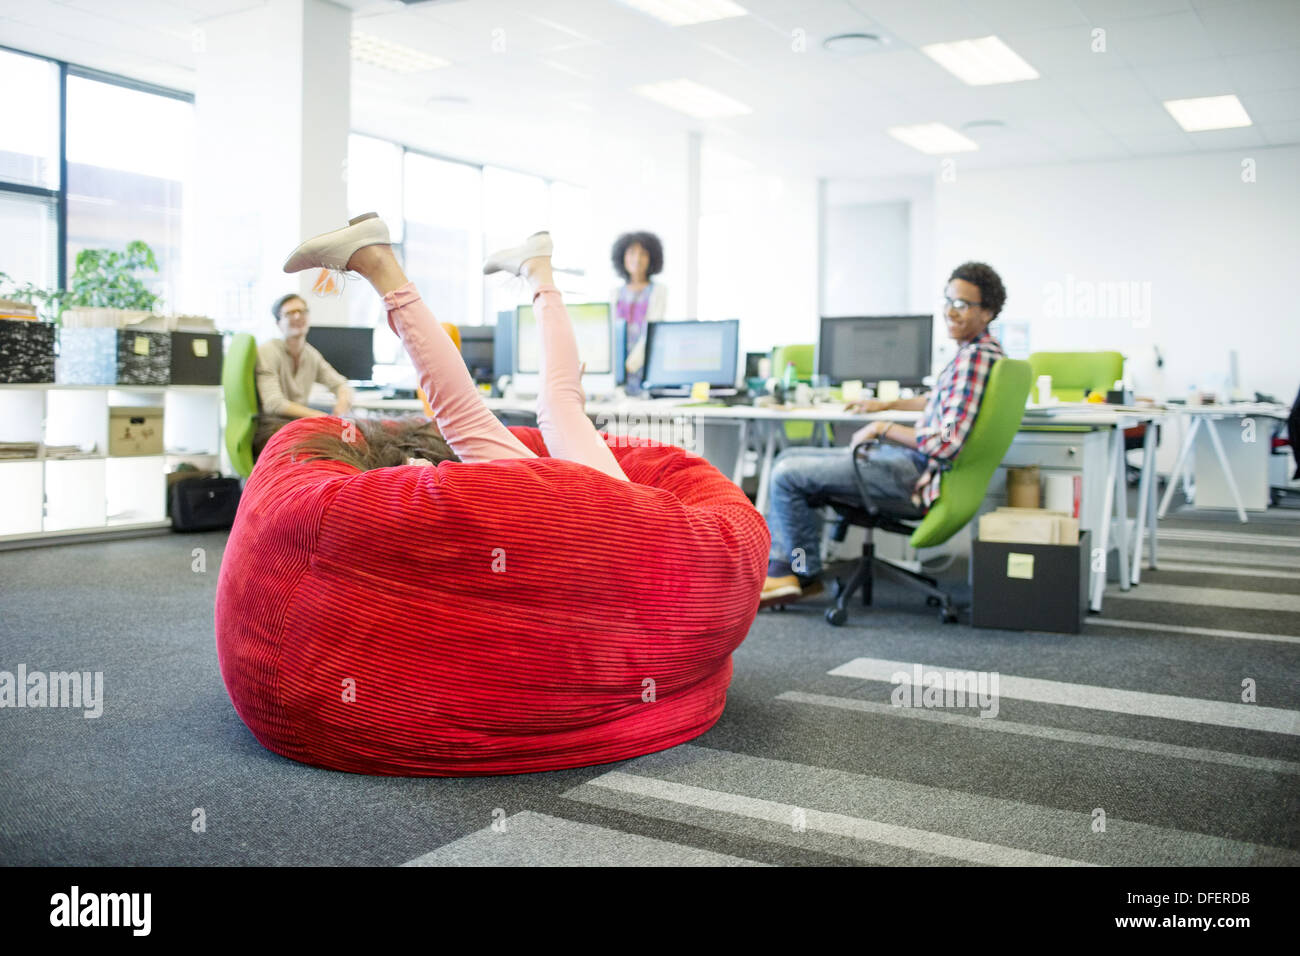 Businesswoman playing in beanbag chair in office - Stock Image